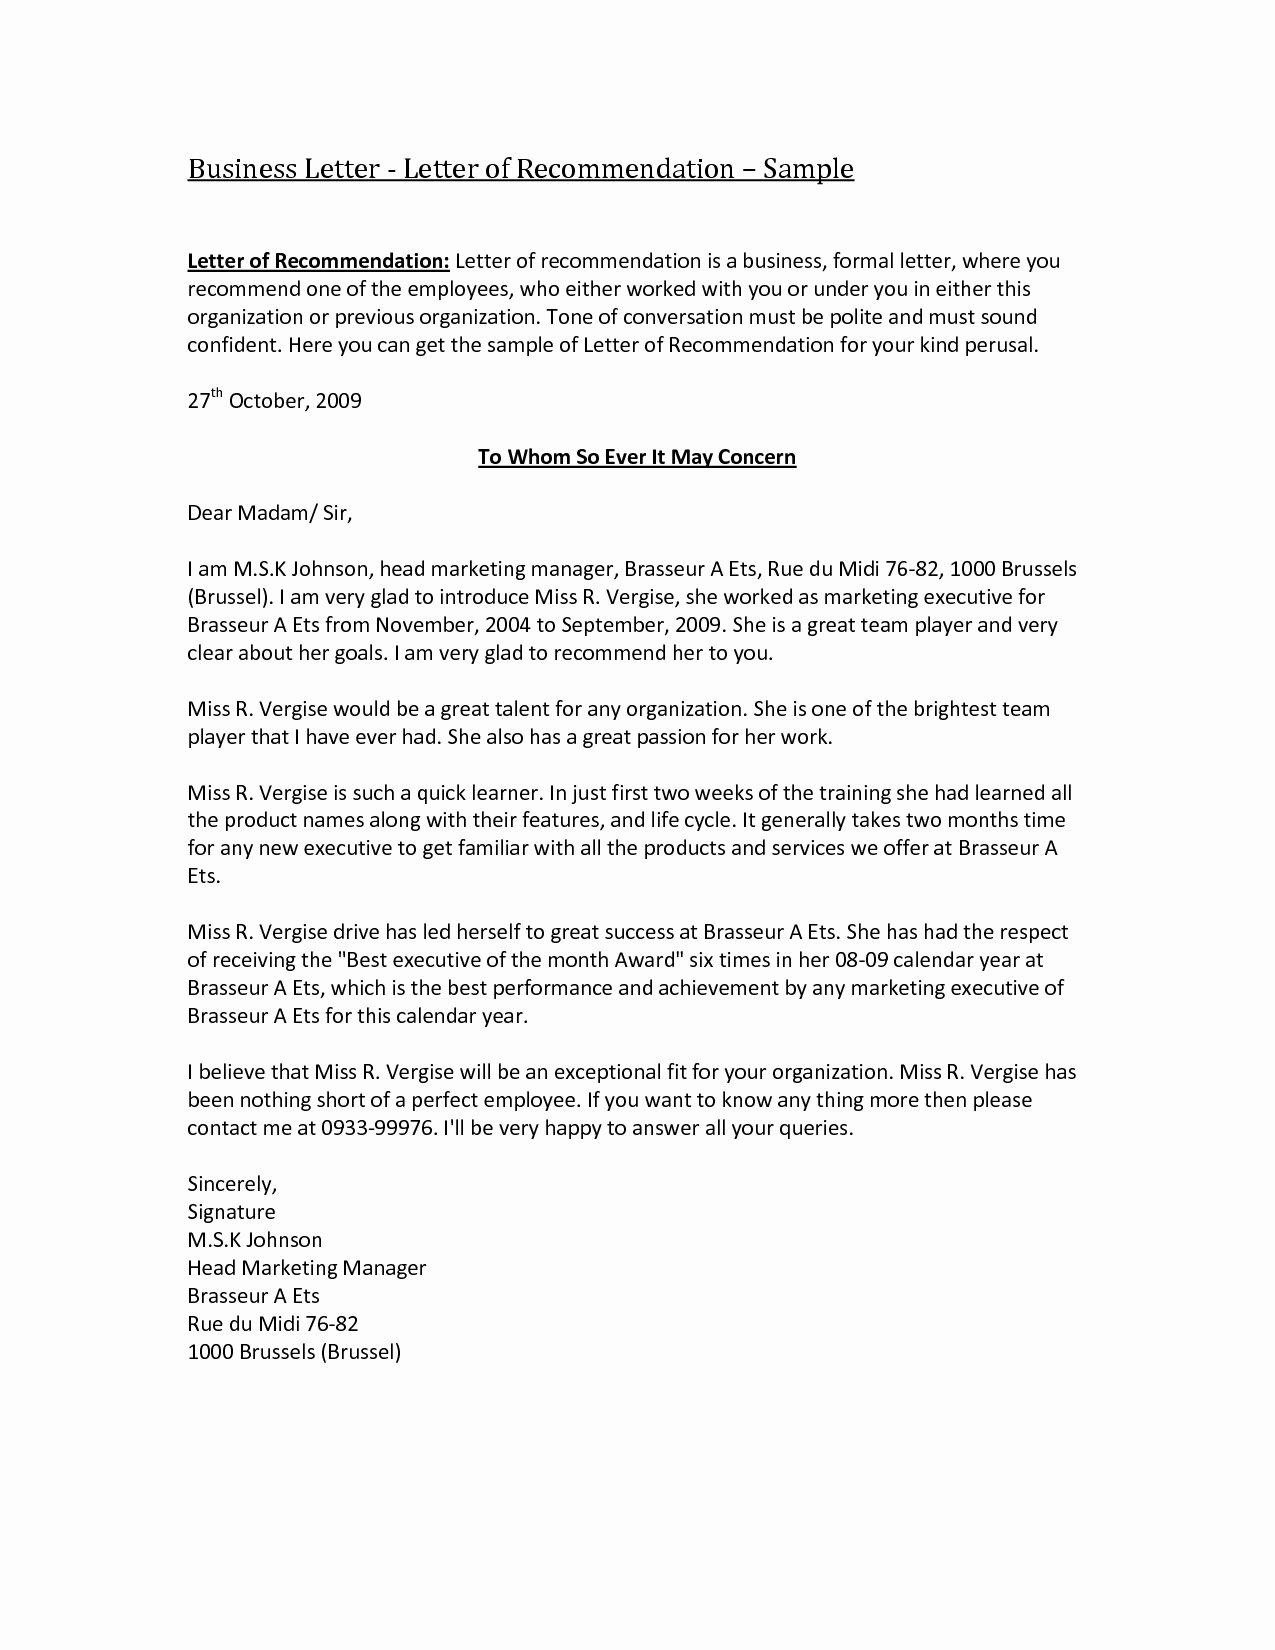 Business Referral Letter Template